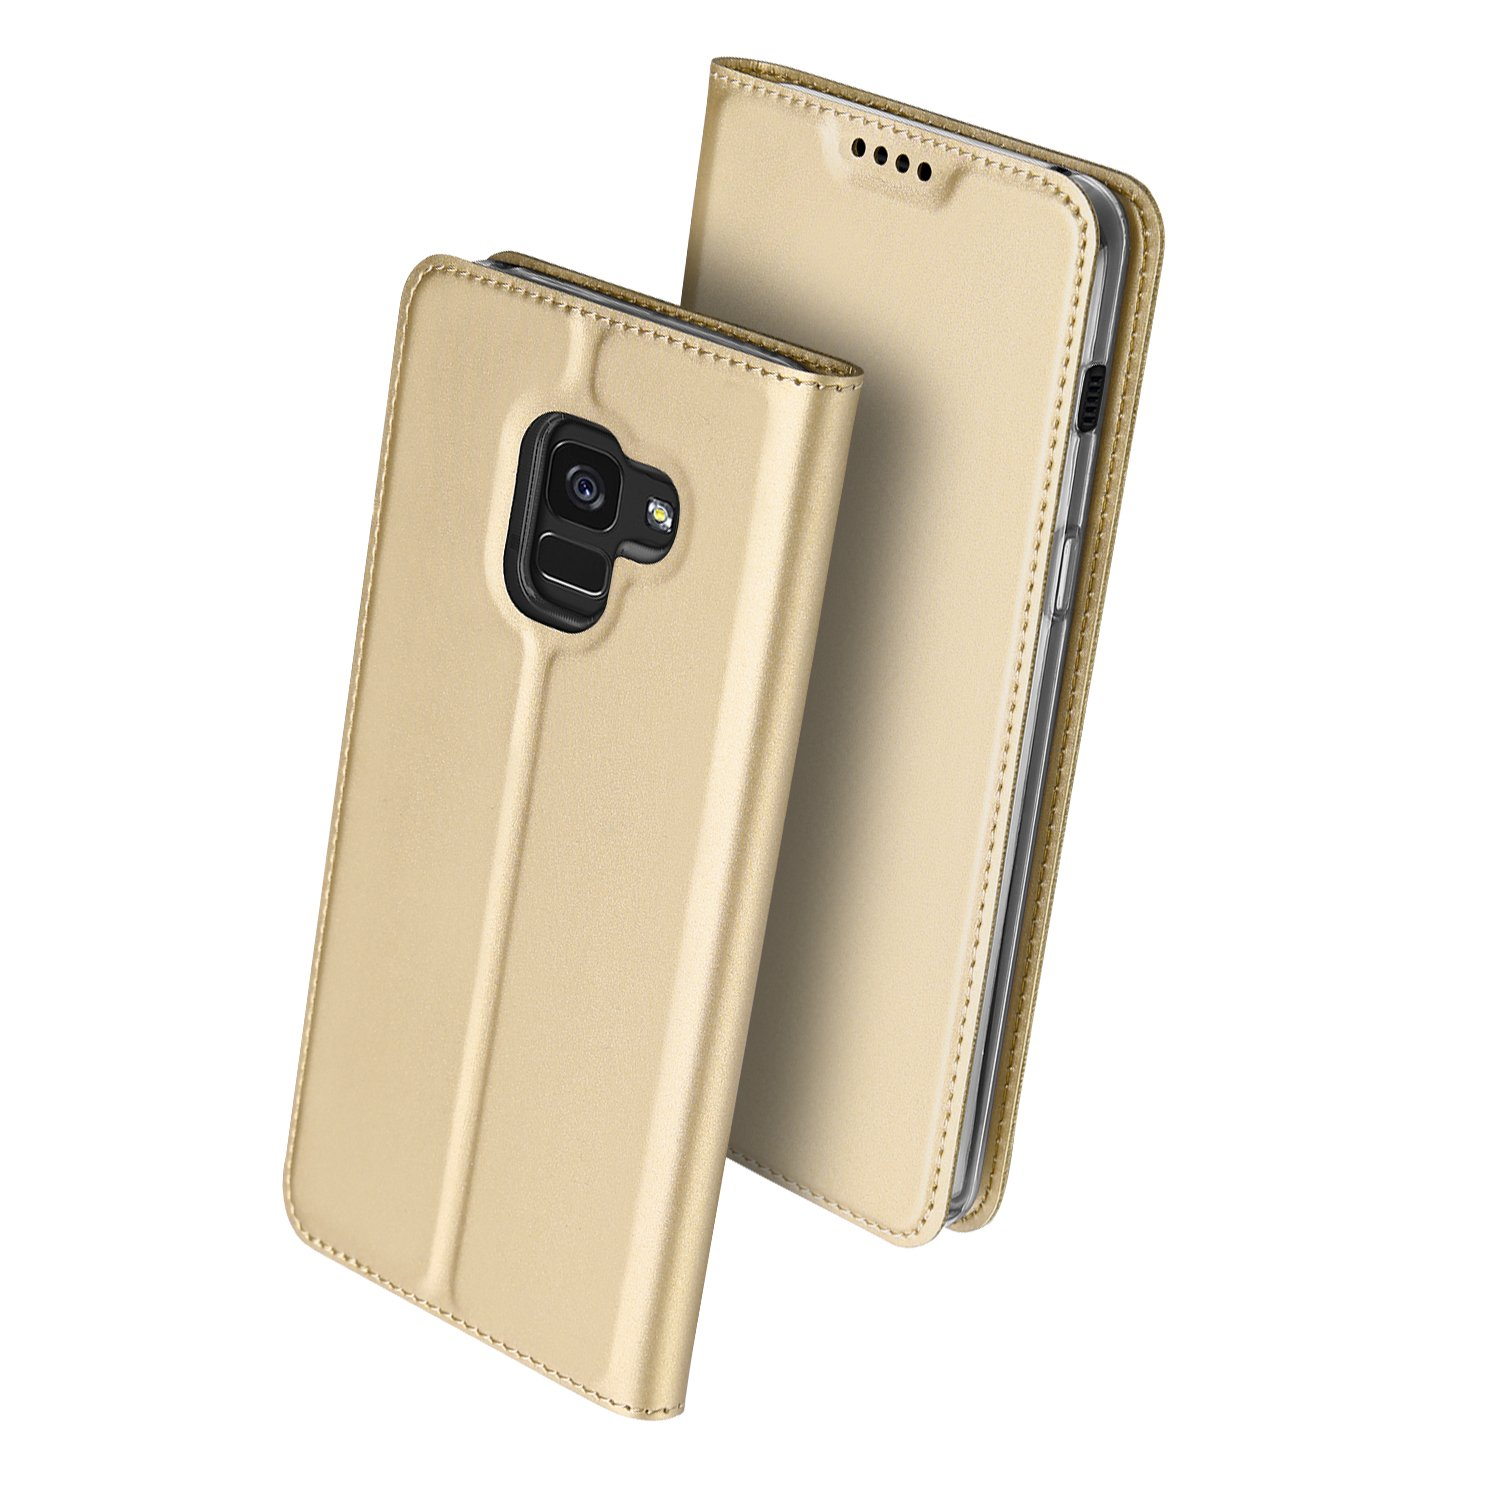 Samsung Galaxy S8 Plus case, coloyanxi&DUX DUCIS Luxury Leather Flip Cover Wallet Phone Case For Samsung Galaxy S8 Plus 6.2 inch - Rose Gold